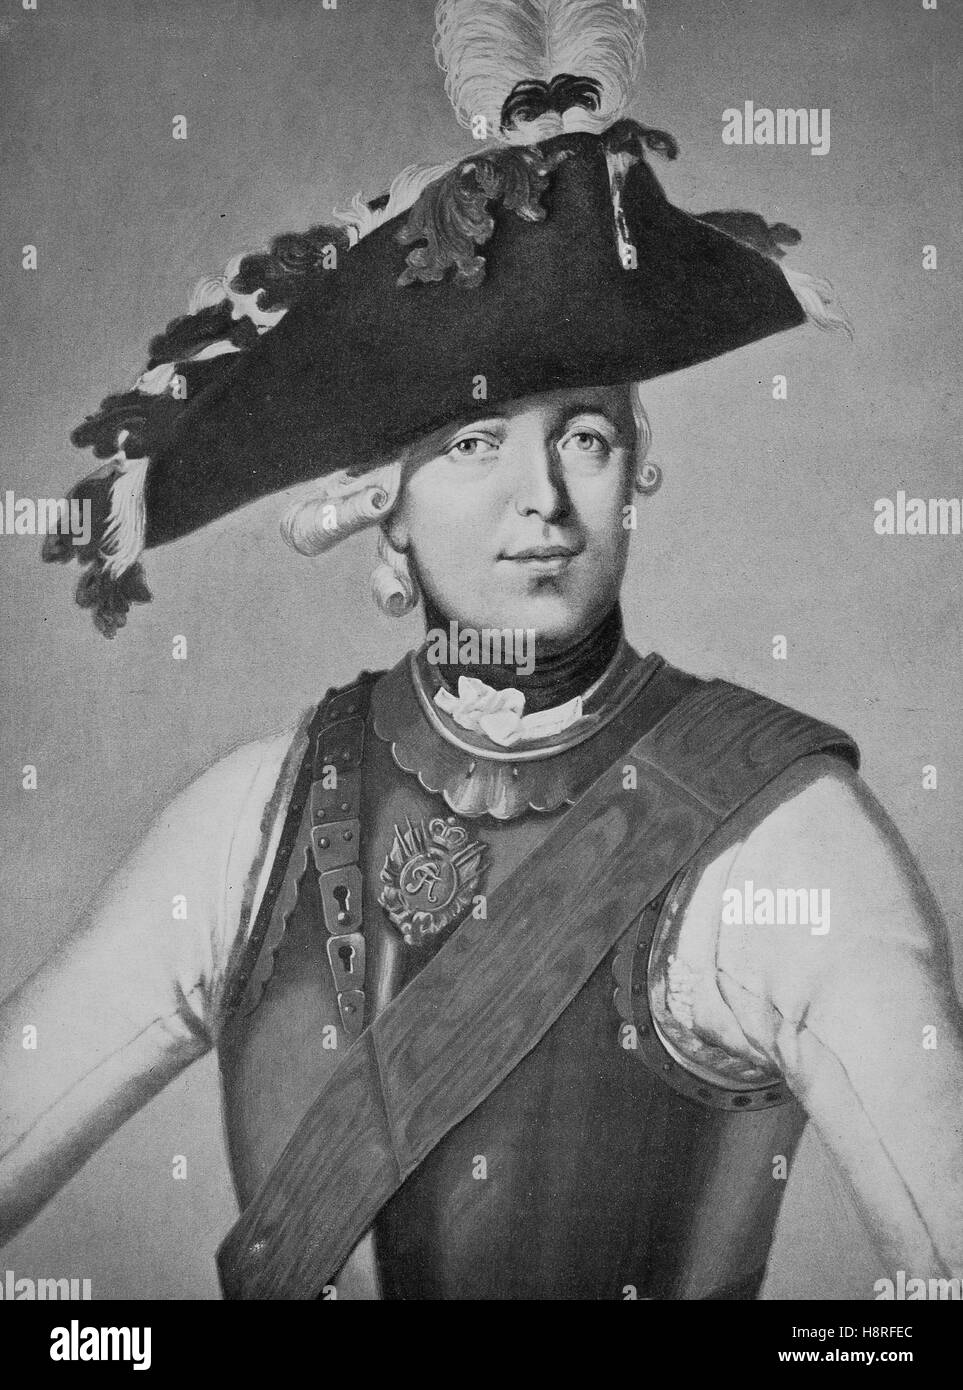 Friedrich Wilhelm Freiherr von Seydlitz was a Prussian officer and one of the greatest German cavalry generals Stock Photo